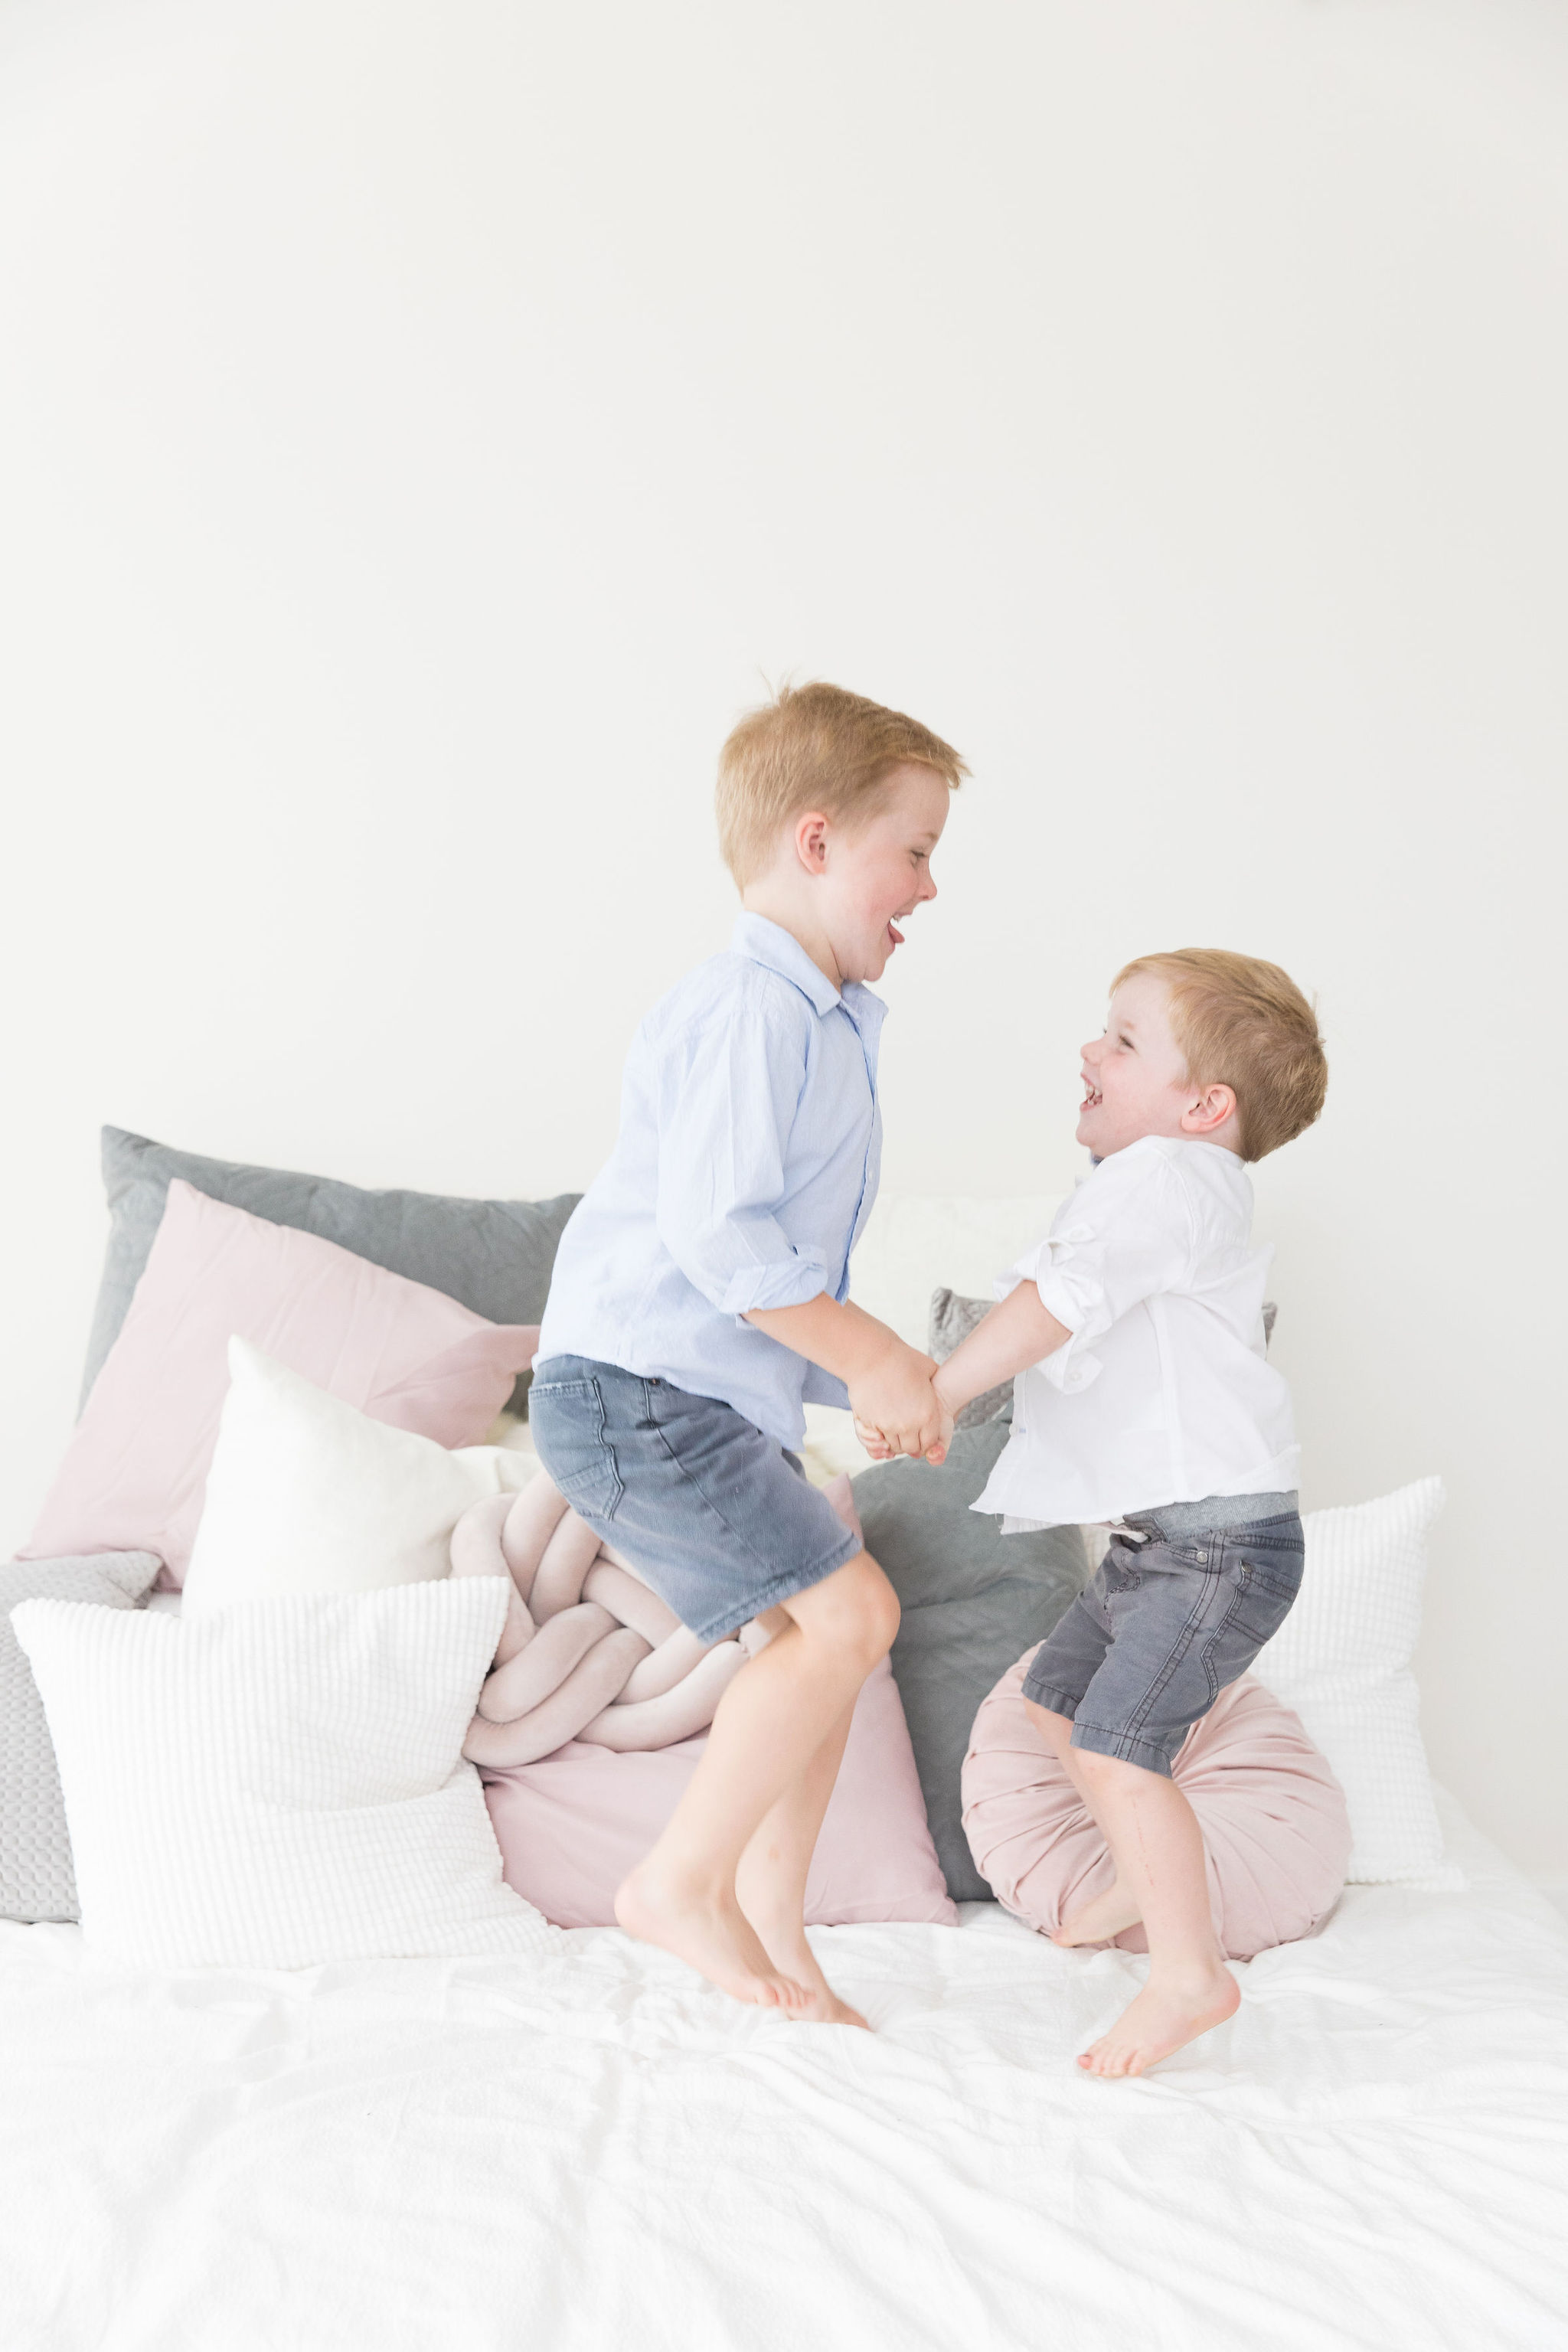 Kids Jumping on a bed - Family Photography Canberra